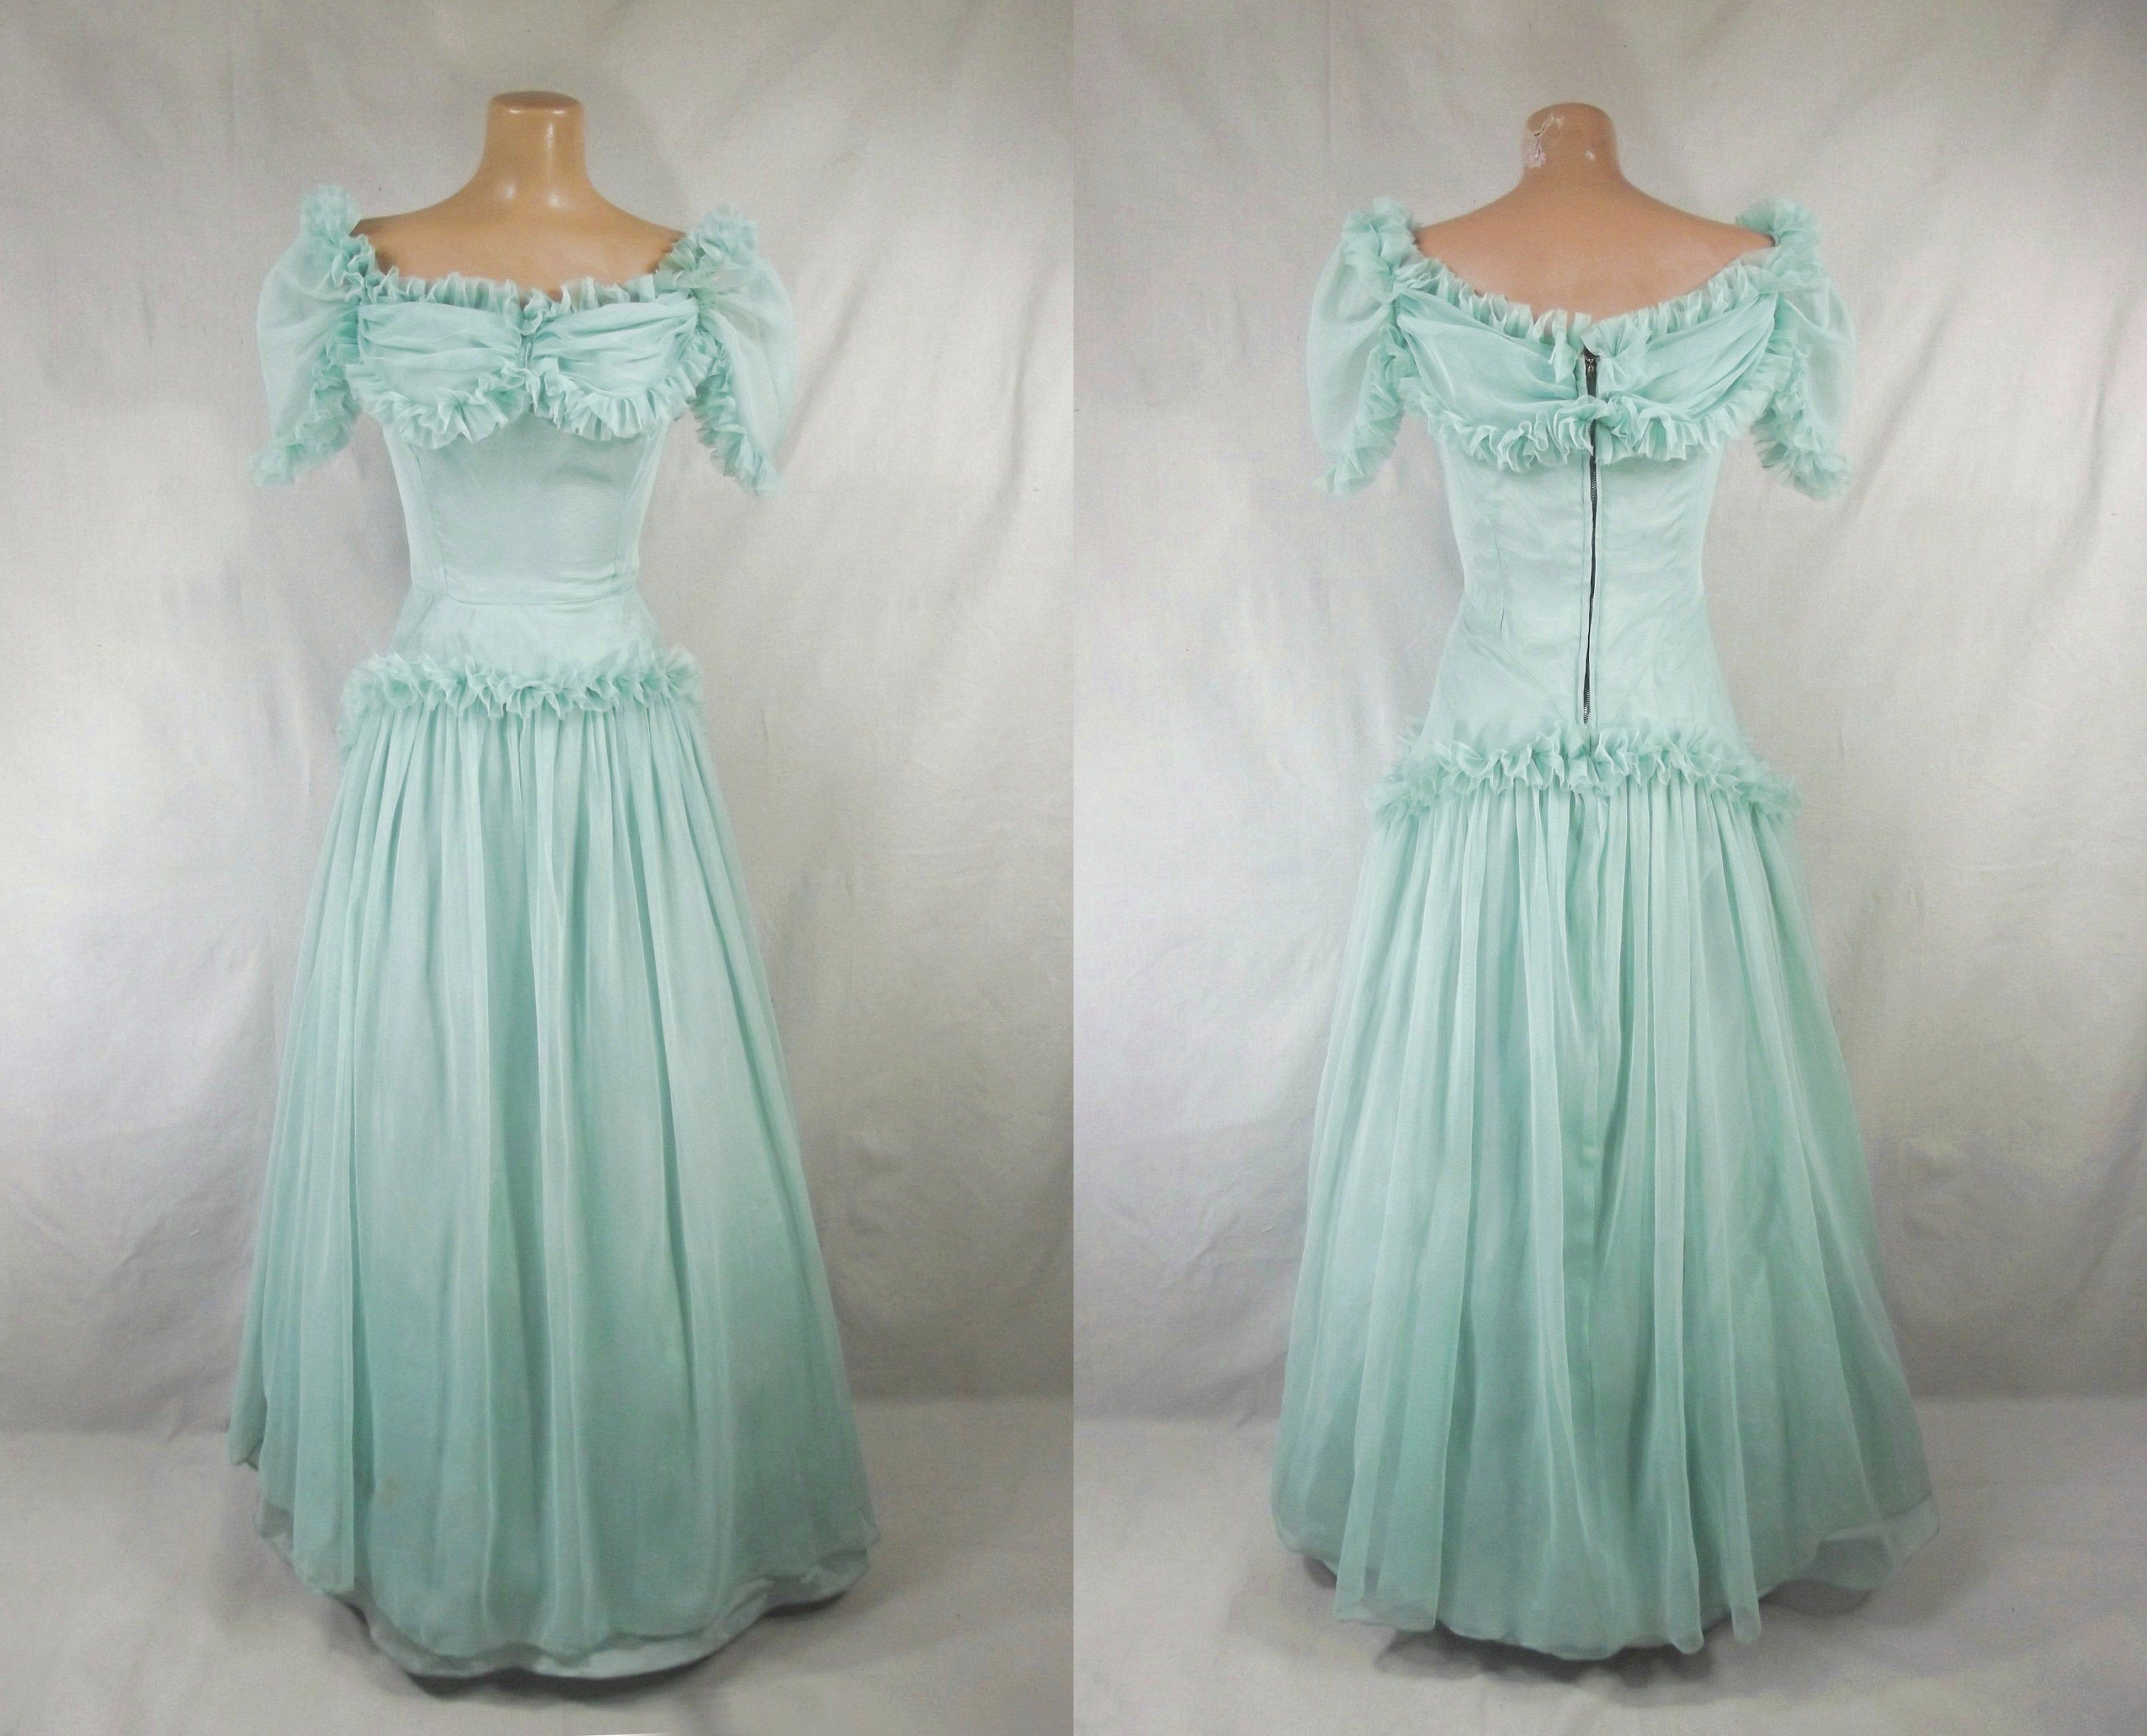 Vintage 40s Sea Glass Mesh Formal Cotillion Gown 1940s Cupcake Prom Dress Off Shoulder Sweetheart Neckline Vintage Retro Clothing Ball Gowns Prom Dresses [ 2426 x 3000 Pixel ]